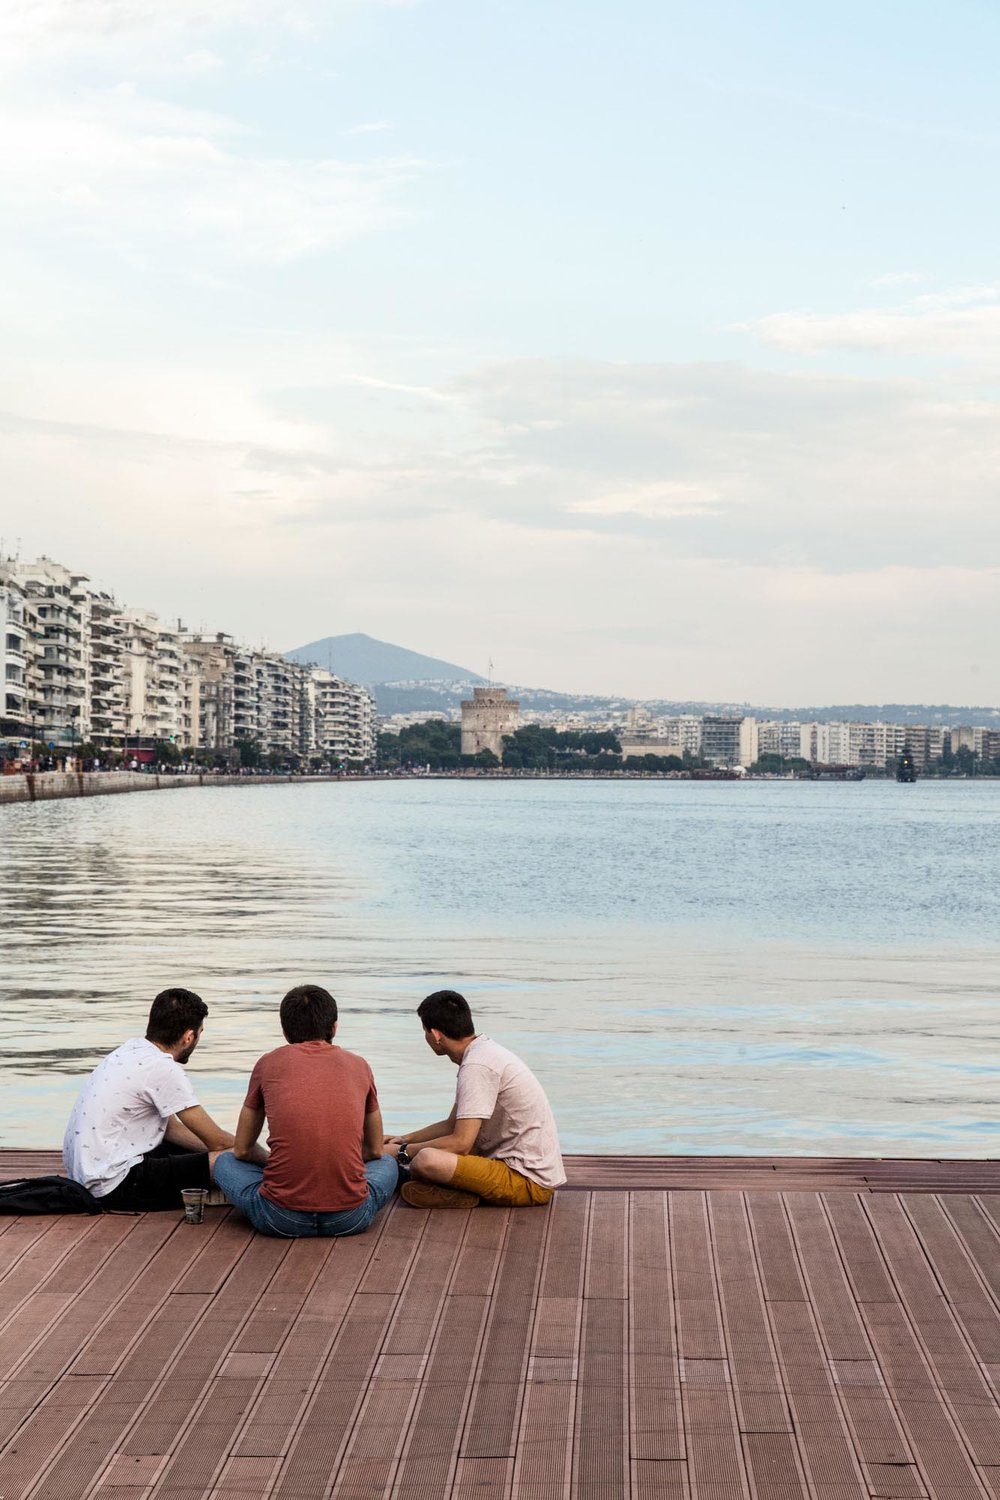 102-201806-GRECE-COMPTOIR-THS-THESSALONIQUE©AUGUSTIN_LE-GALL_HAYTHAM-PICTURES-IMG_2608.jpg